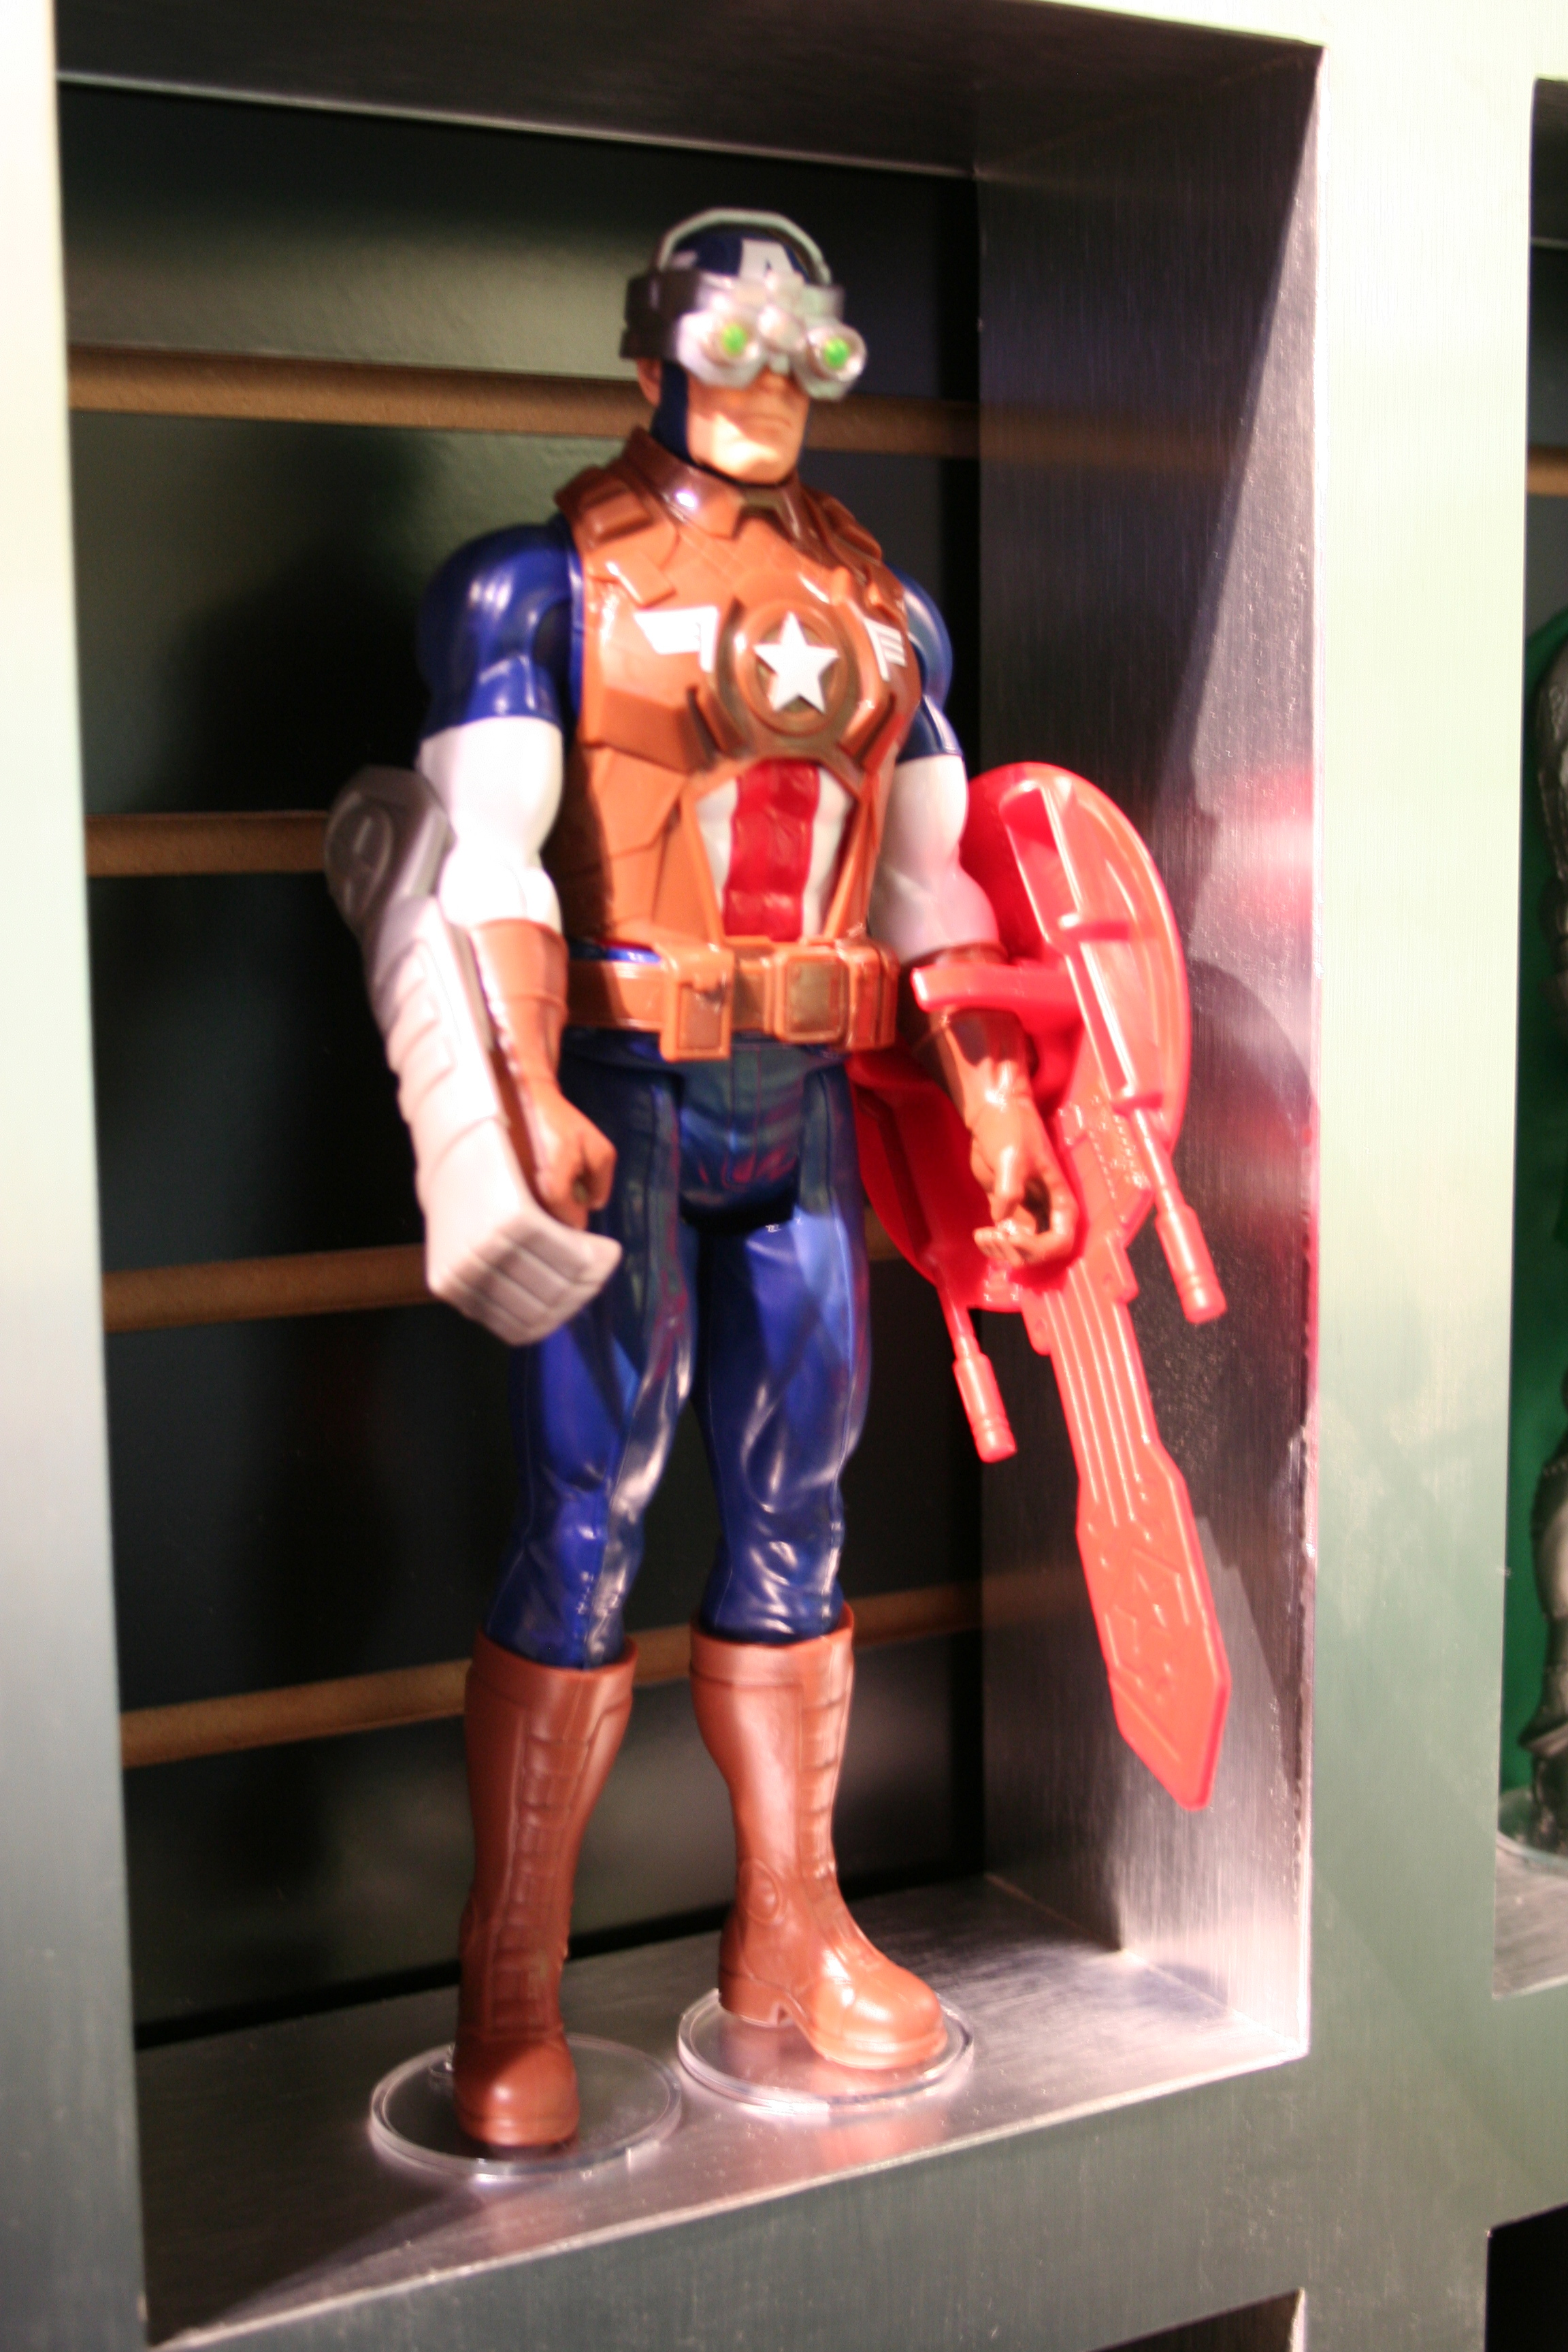 New Spider Man 2 Toys : Marvel action figures toys toy fair